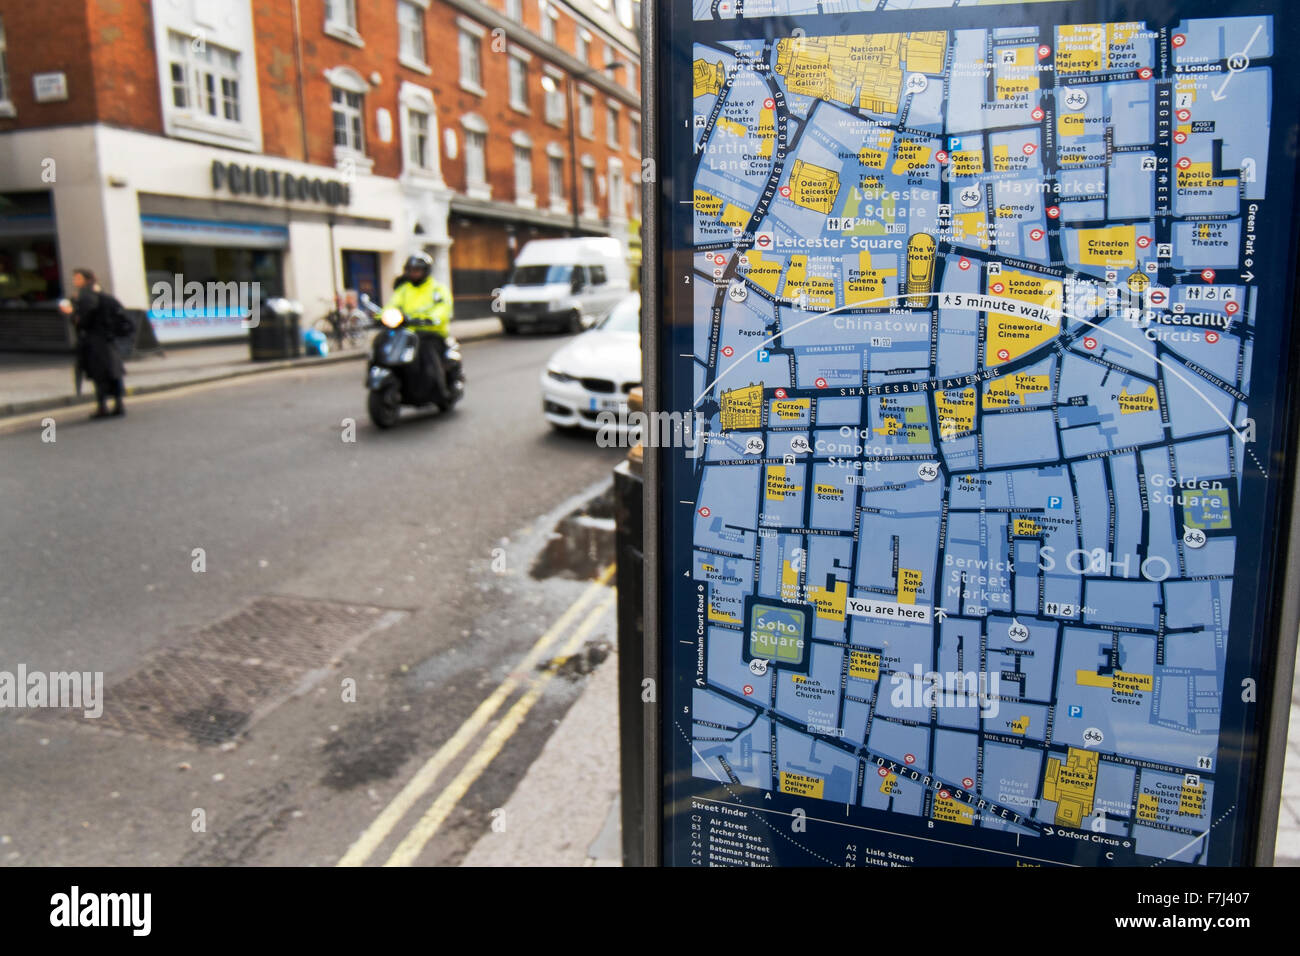 Street sign showing a map of where you are at Wardour Street and directions to destinations in London, England, - Stock Image